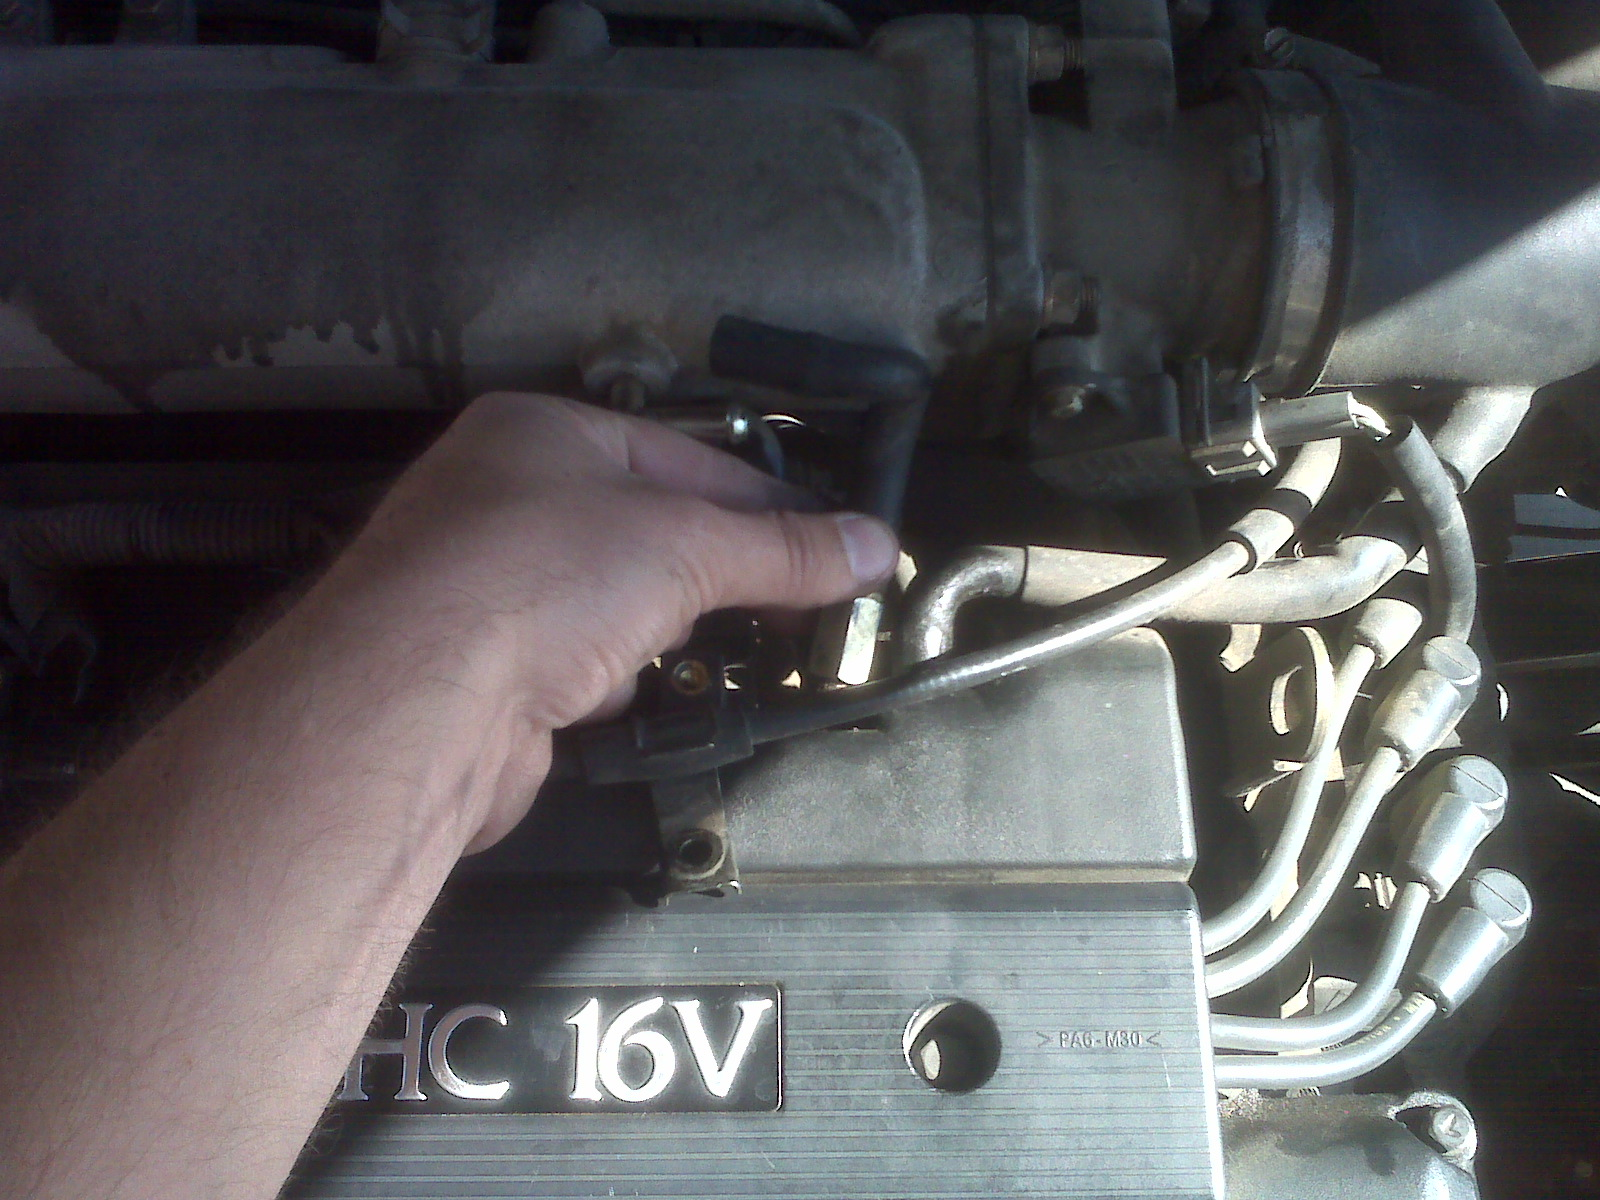 Omid S Diy Web Log 1999 Hyundai Elantra Pcv Valve Replacement